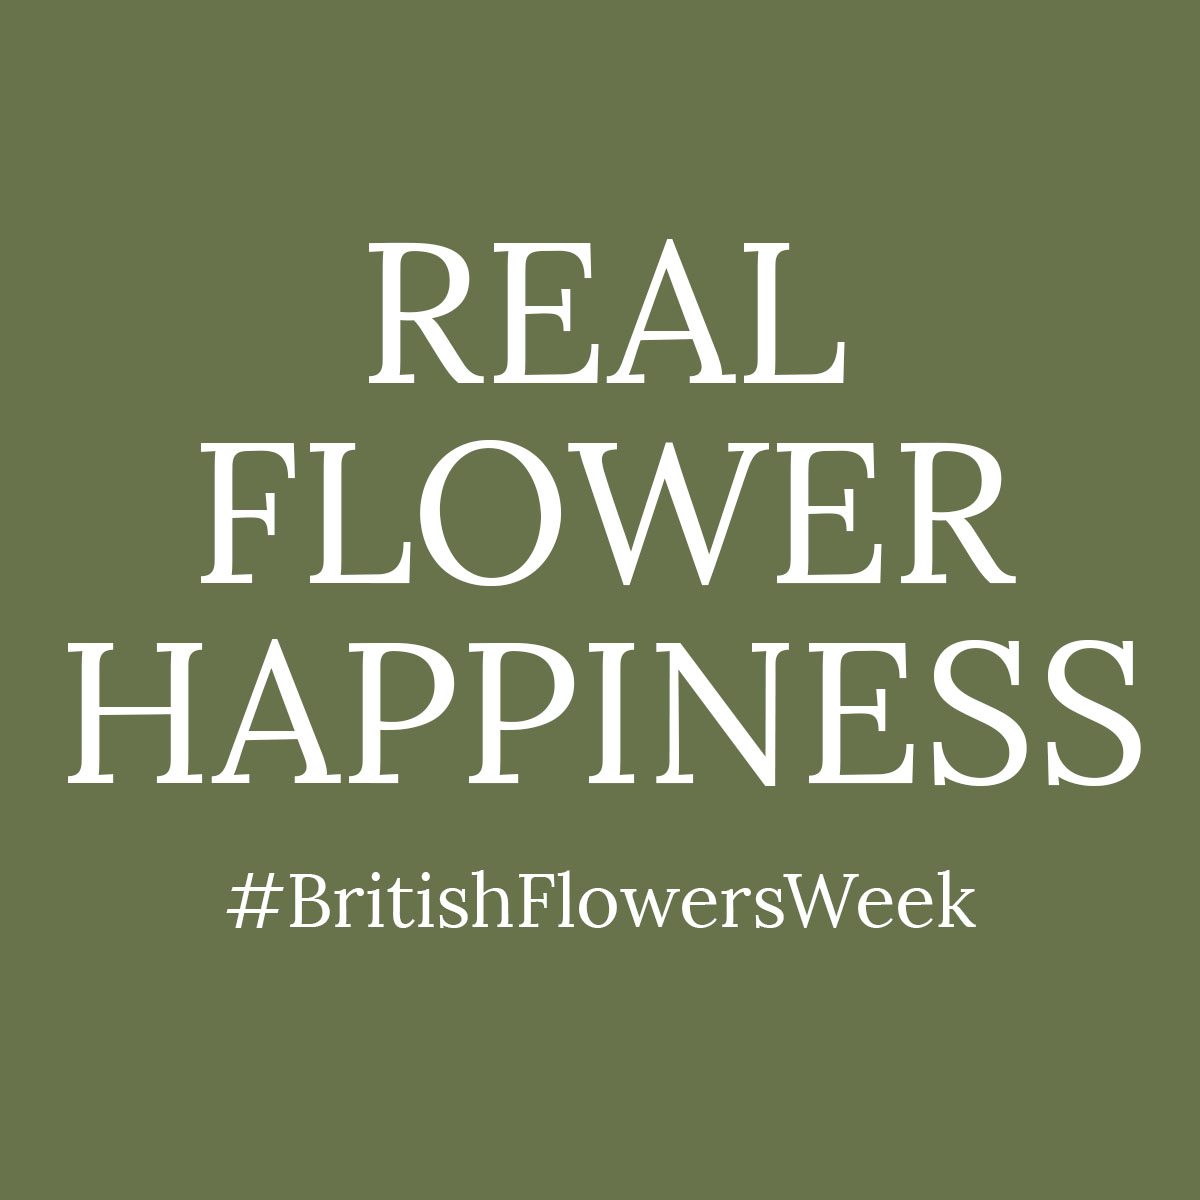 Why flowers make people happy | British Flowers Week